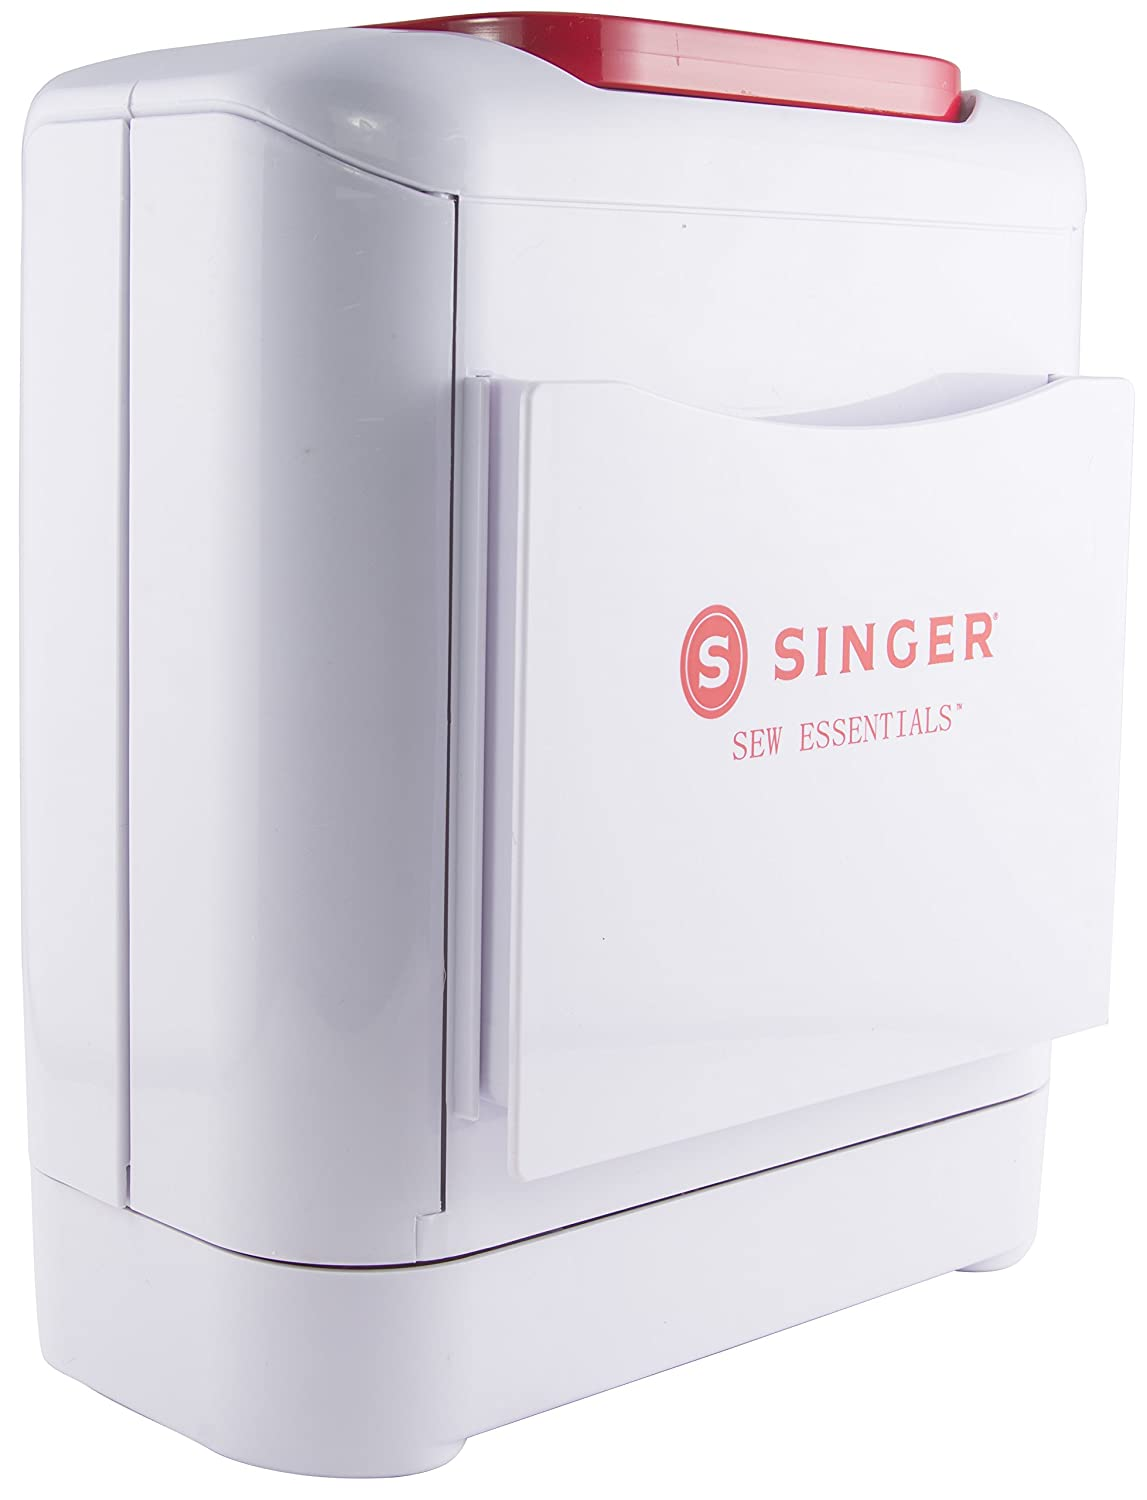 Amazoncom Singer Sew Essentials Storage System Pieces - Singer kitchen equipment